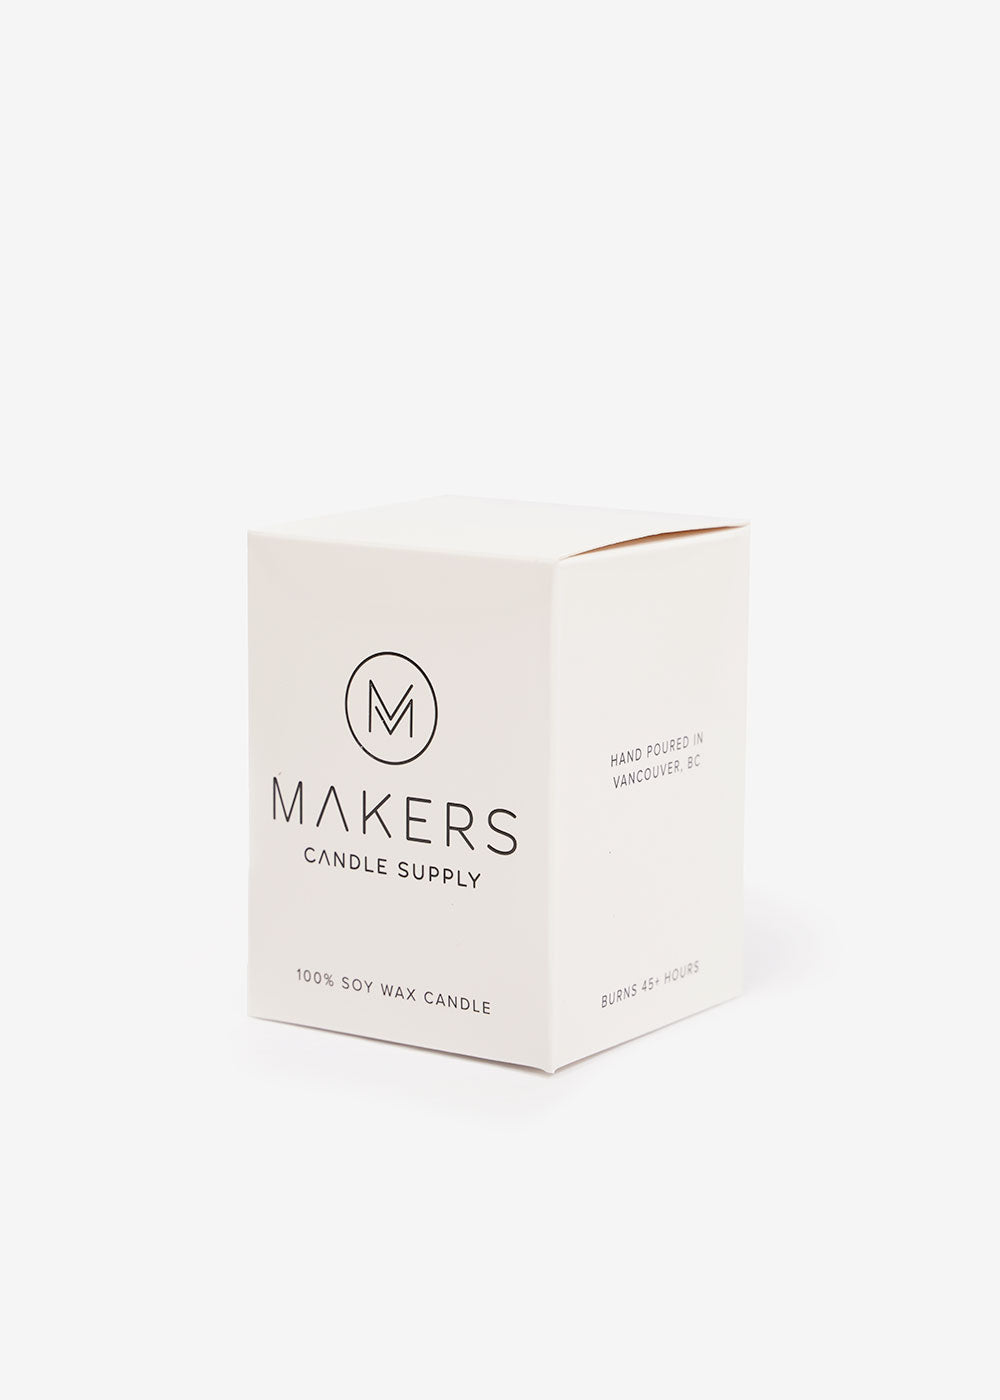 Makers Candle Supply The Fall Candle — Shop sustainable fashion and slow fashion at New Classics Studios